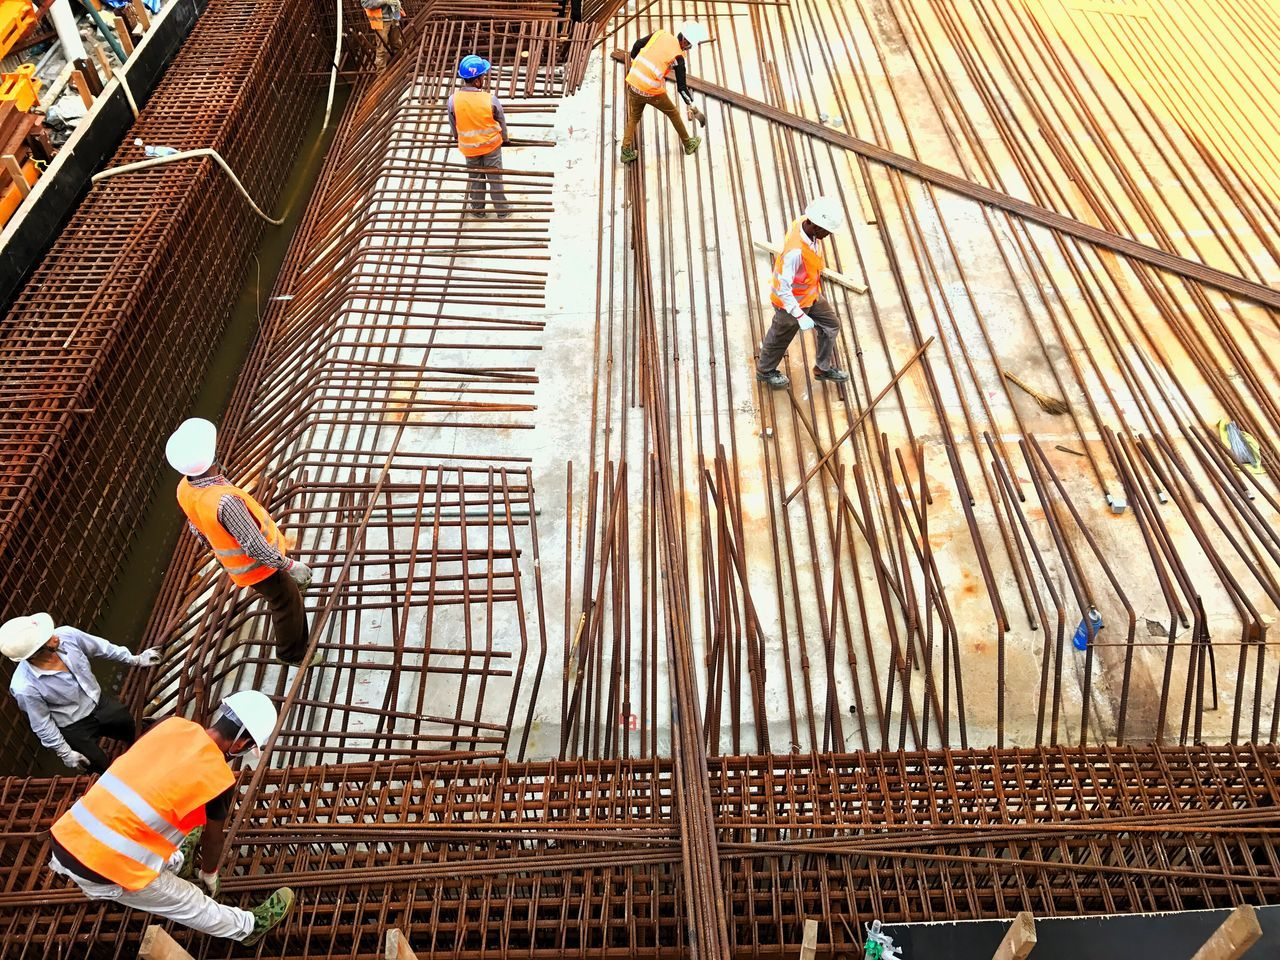 Workers at construction site Metalwork Construction Civil Rngineering Headwear Manual Worker Helmet Togetherness Teamwork Outdoors Industry Ground Concrete Cement Iron Bar Barbender Construction Site